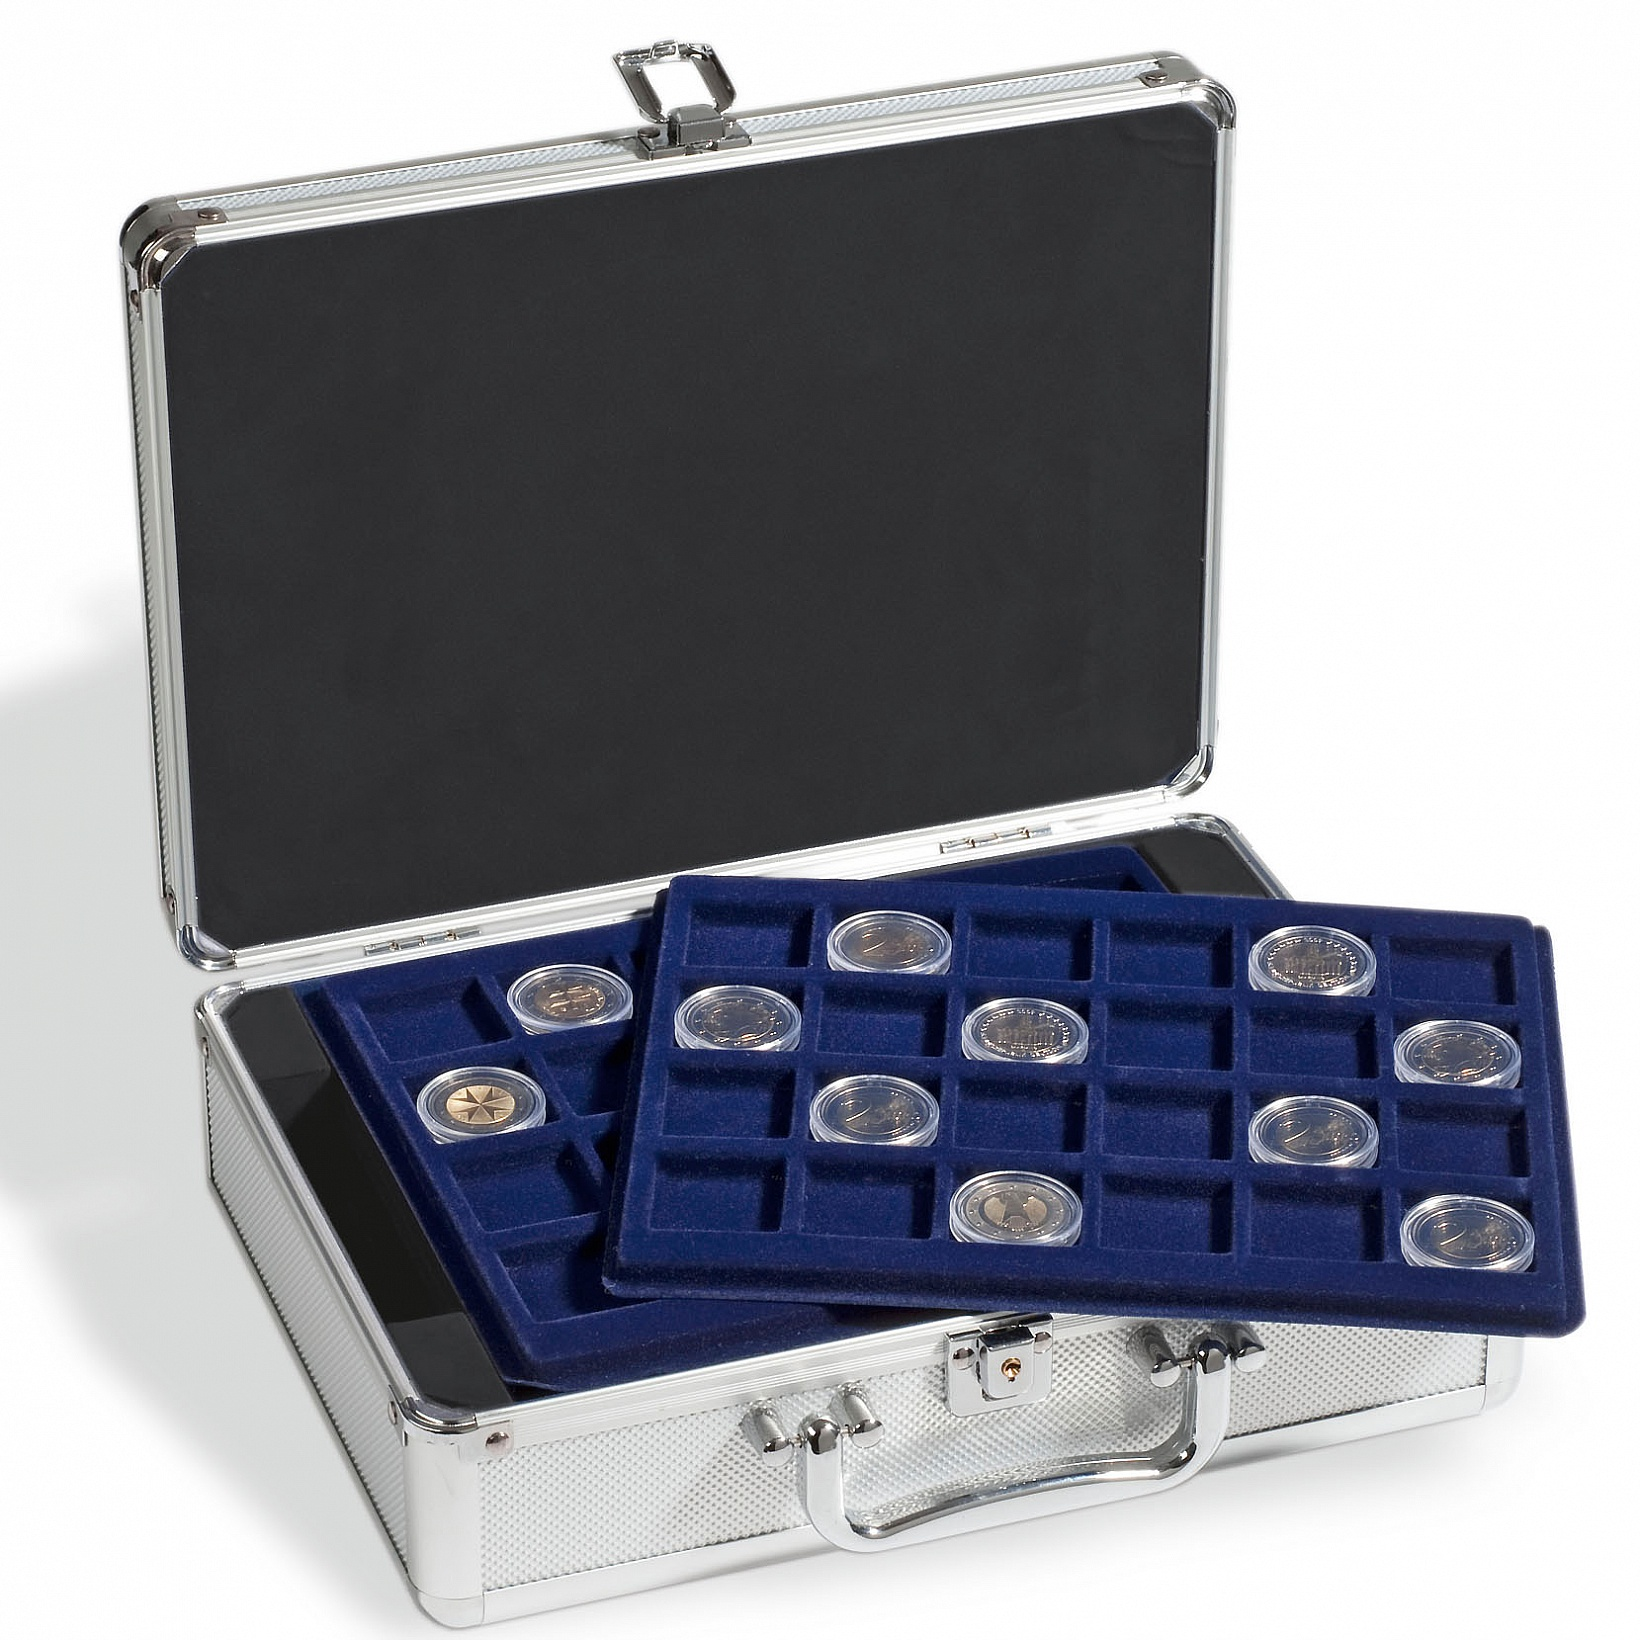 coin-case-for-144-2-euro-coins-in-capsules-incl-6-coin-trays